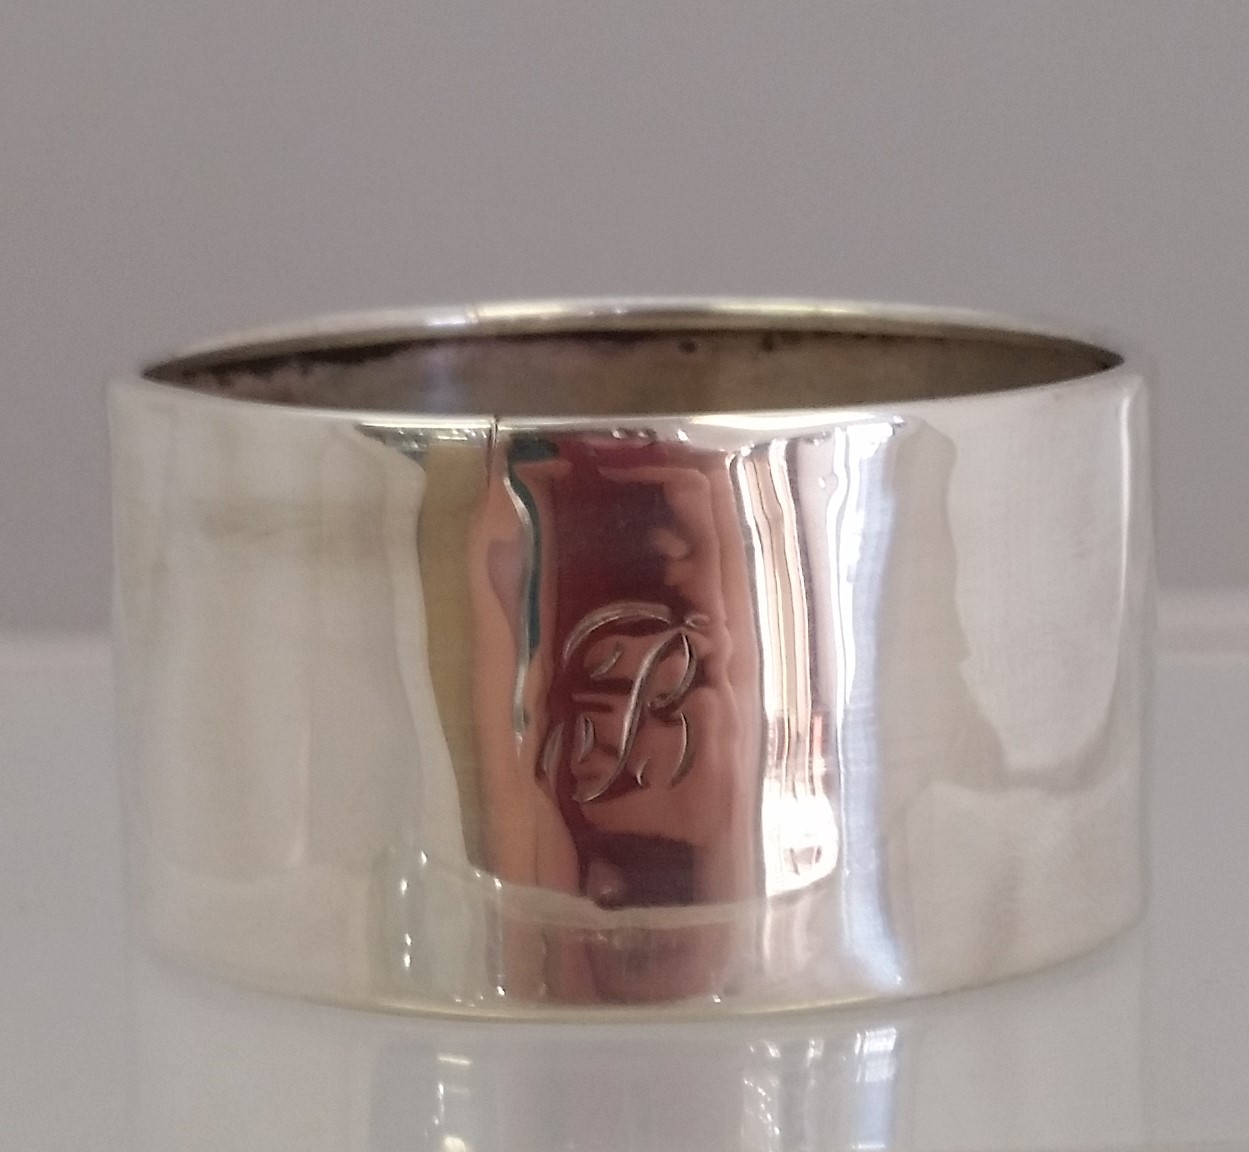 Newburyport Silver Co. - 'Napkin Ring' - Napkin Ring. Plain as is